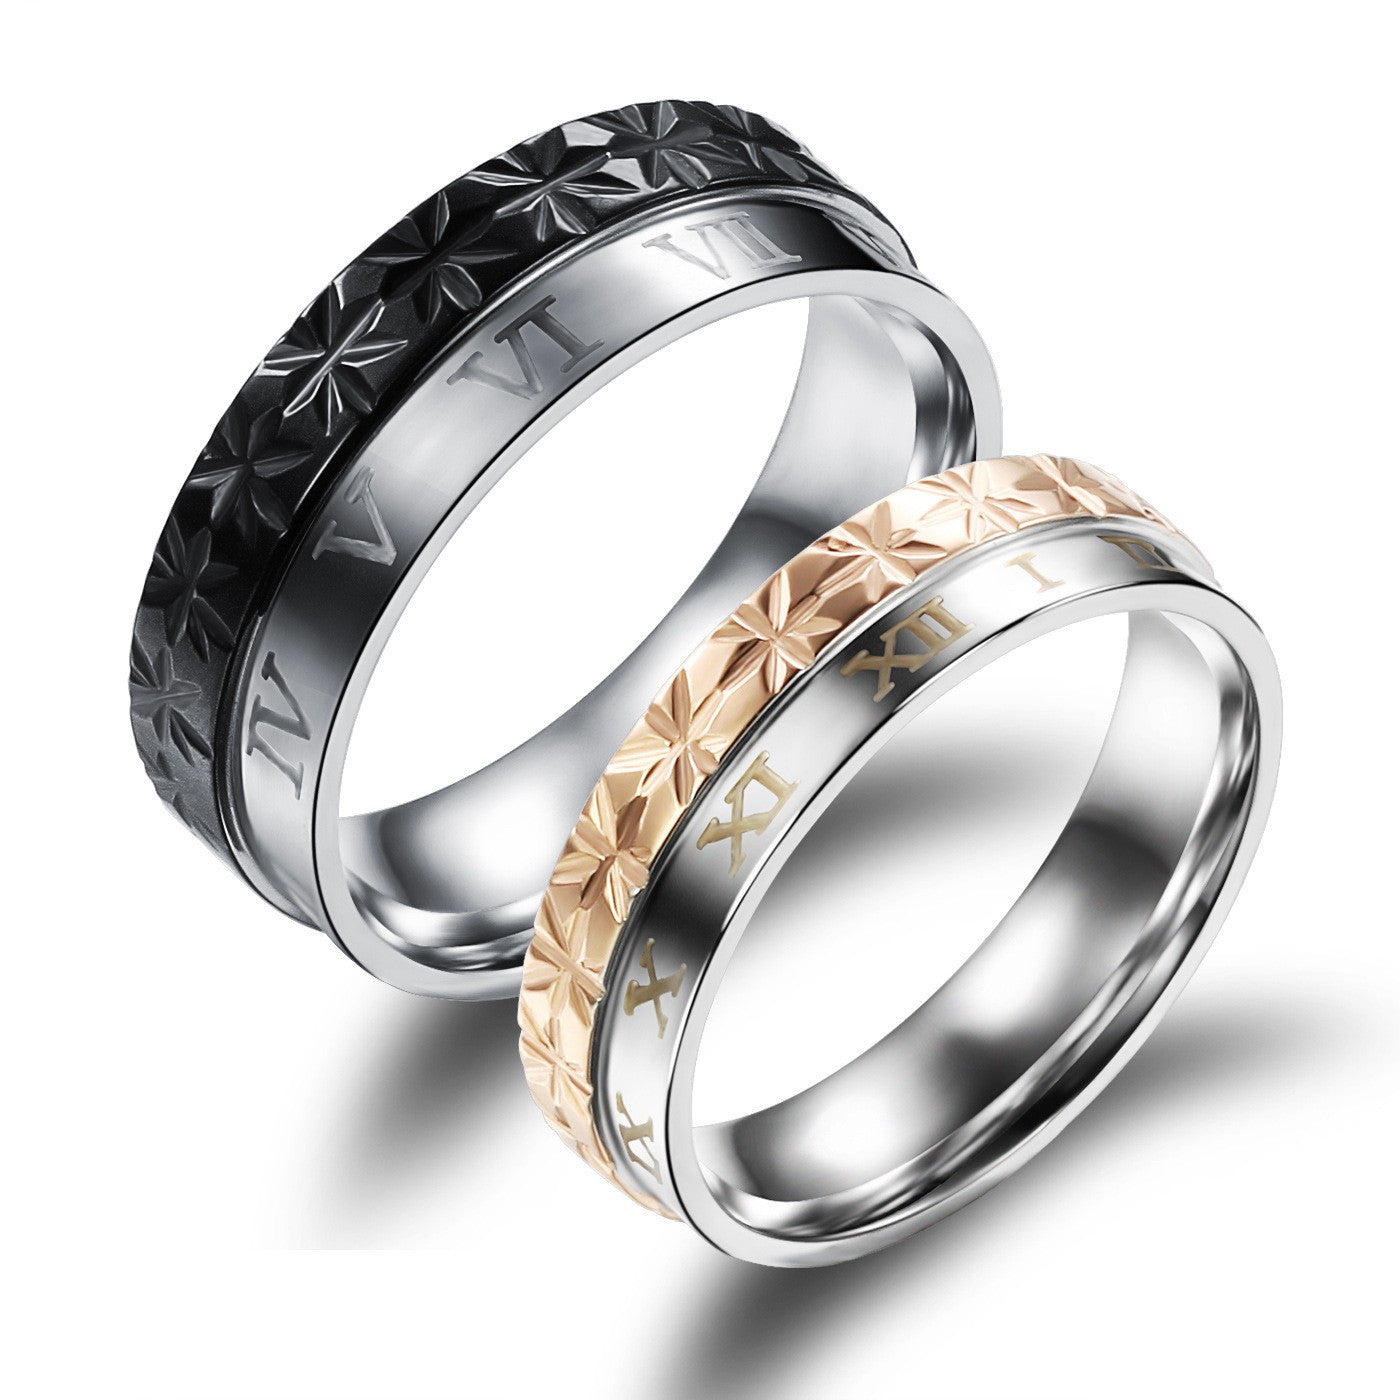 your styles rings wedding envy couple titanium ring everyone let stainless possession innovative love in steel to incredible evermarker